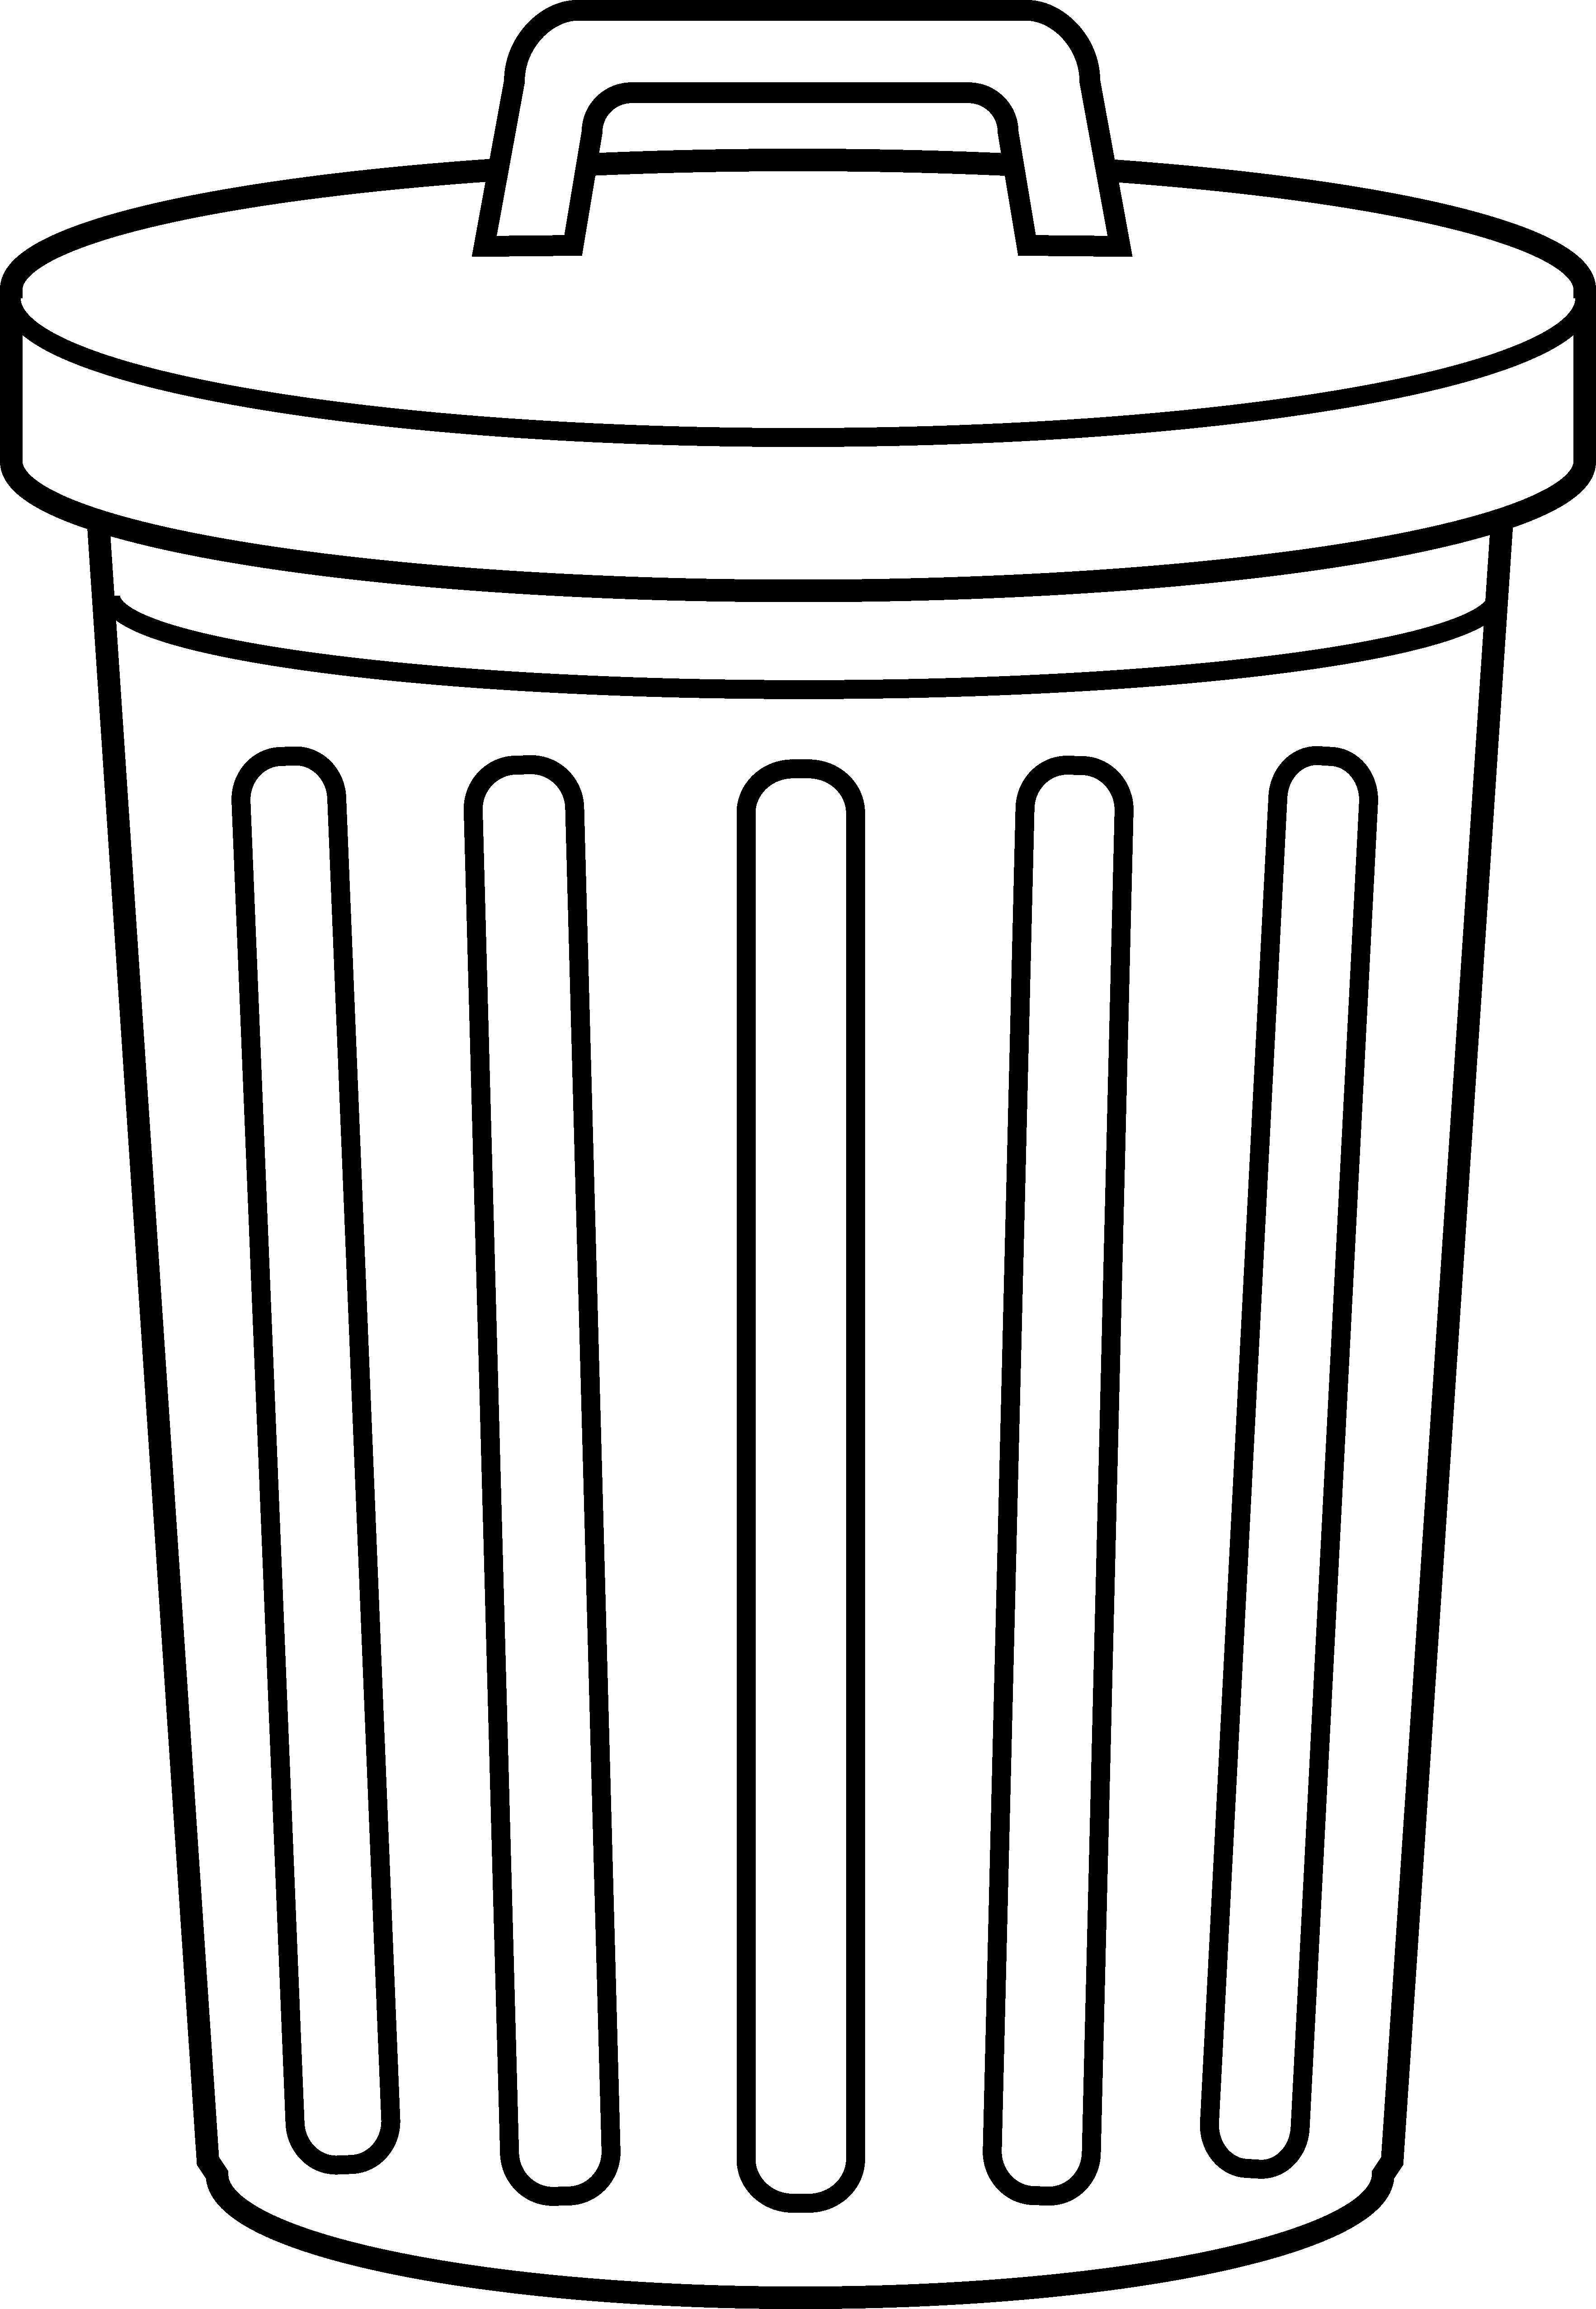 Trashcans clipart graphic royalty free library Free Garbage Can Cliparts, Download Free Clip Art, Free Clip Art on ... graphic royalty free library